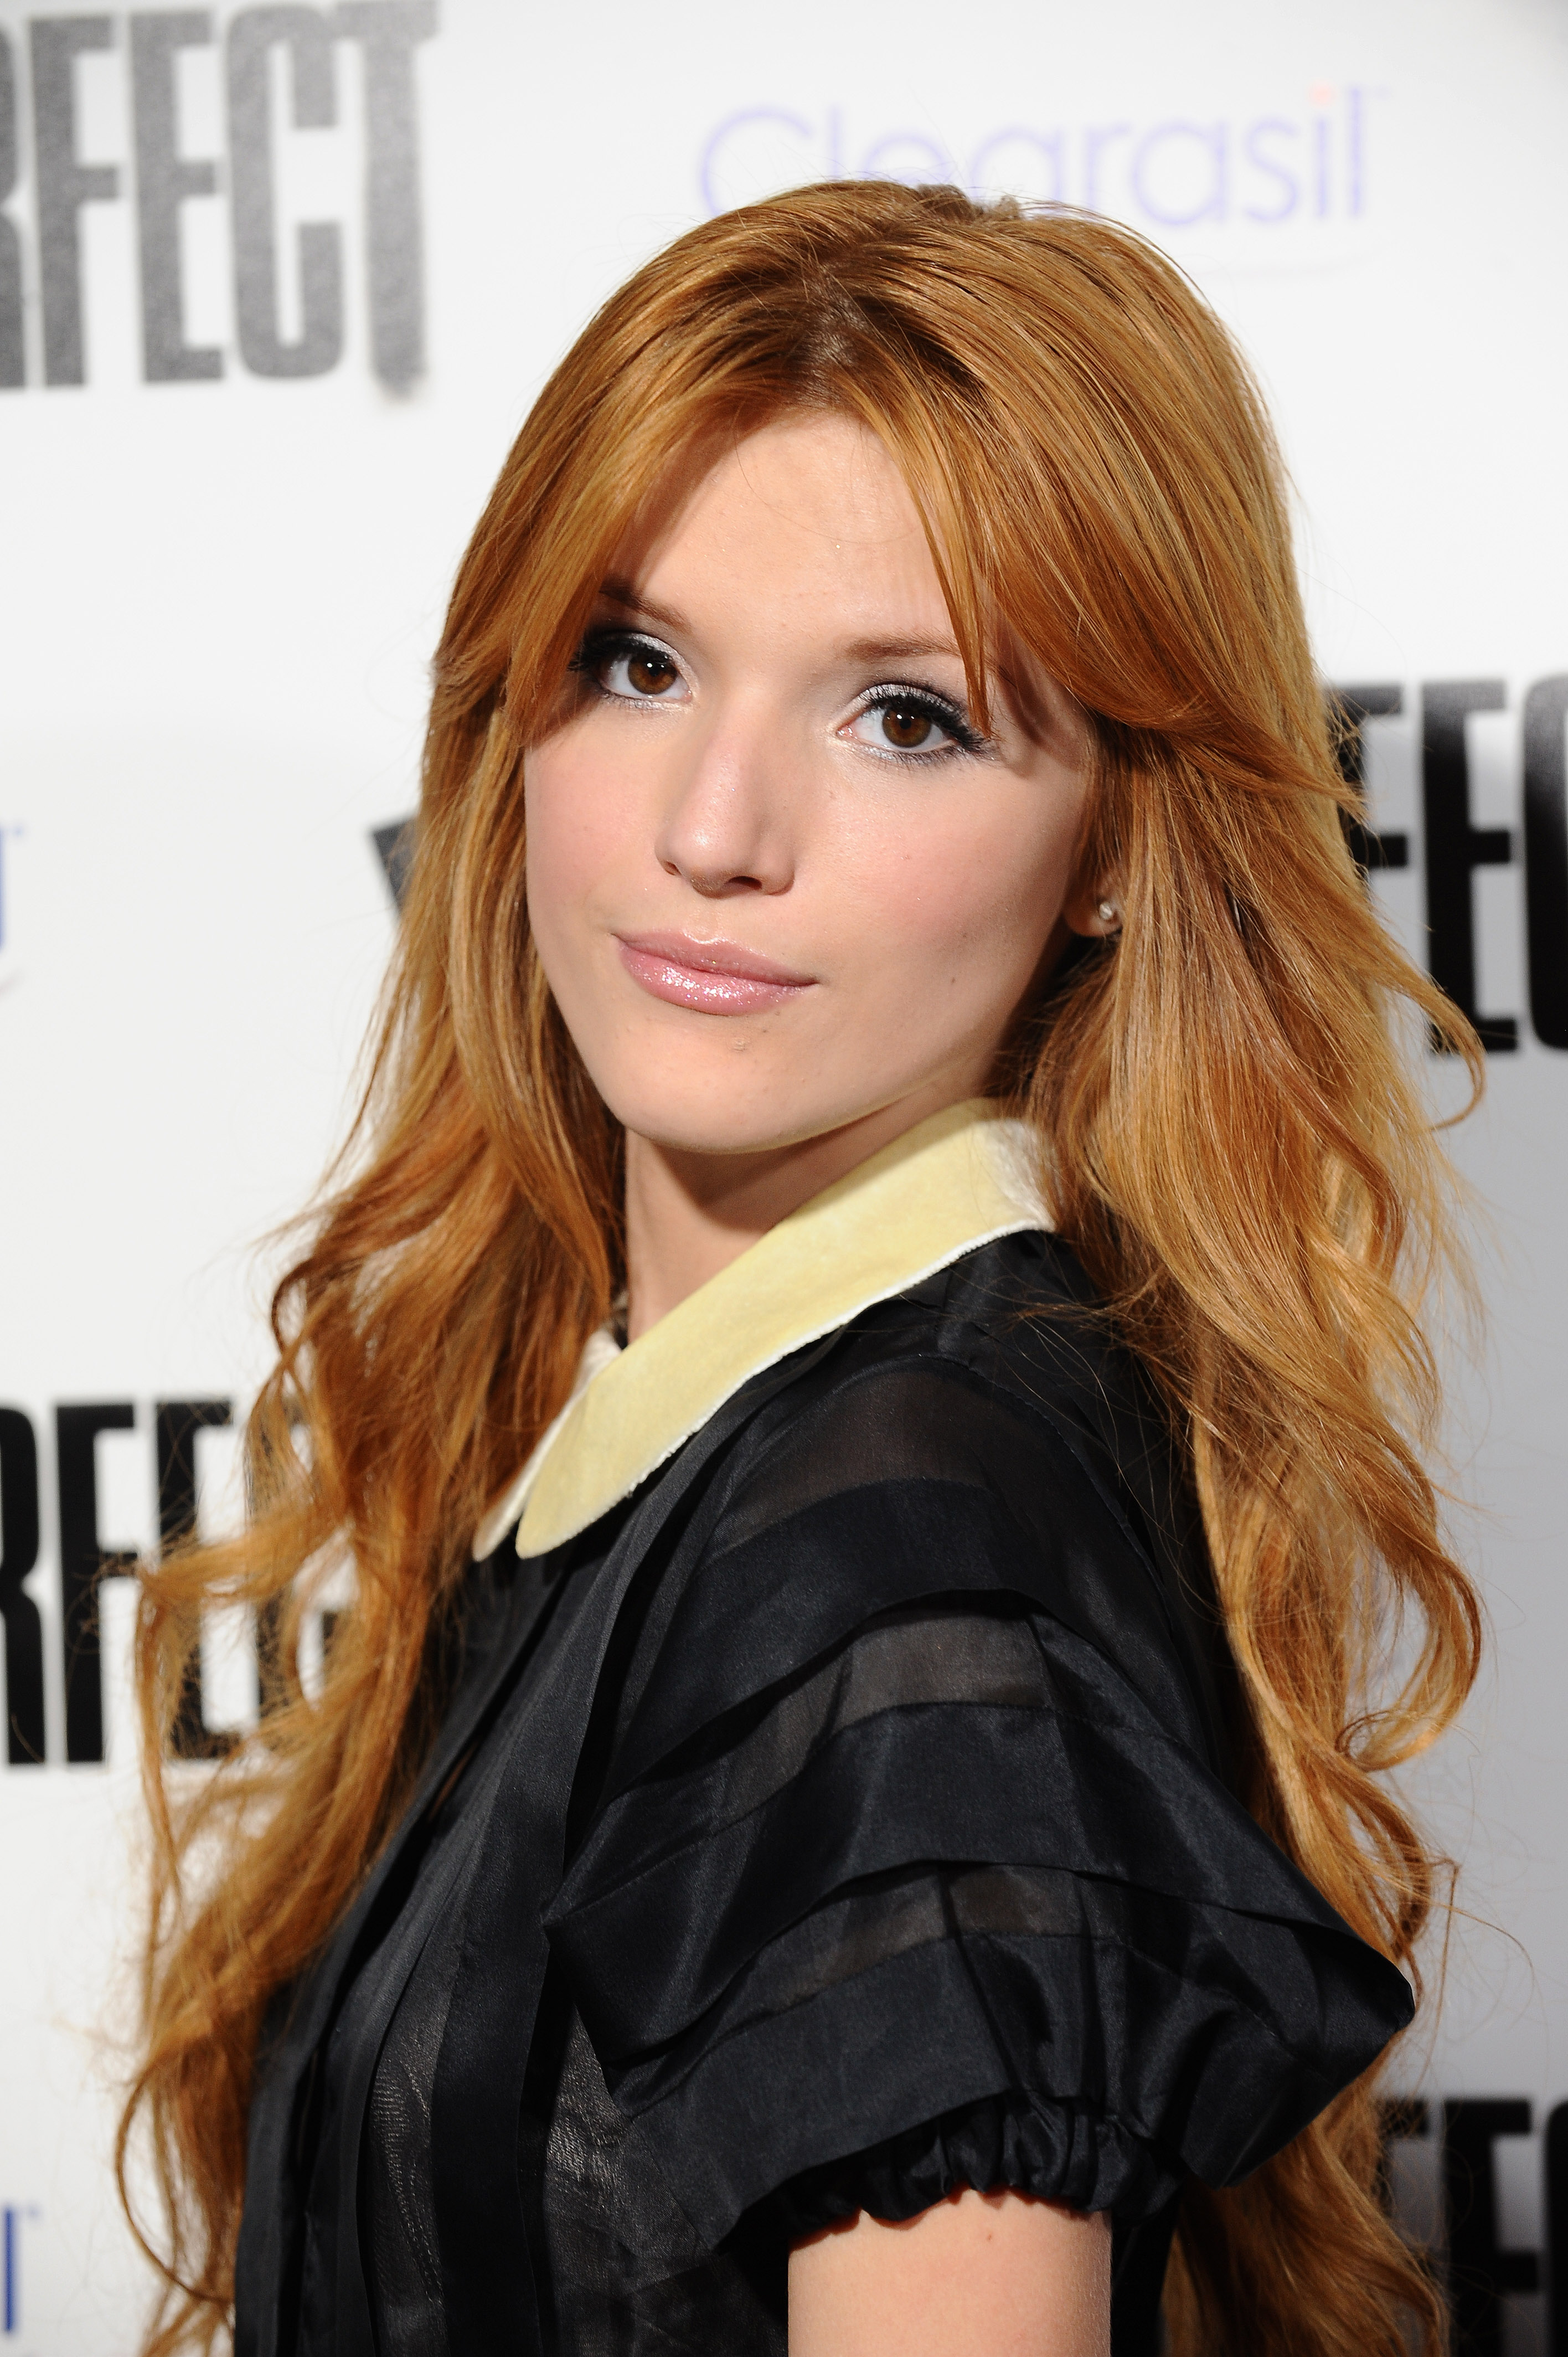 Bella Thorne attends the Hollywood movie premiere Pitch Perfect in ...